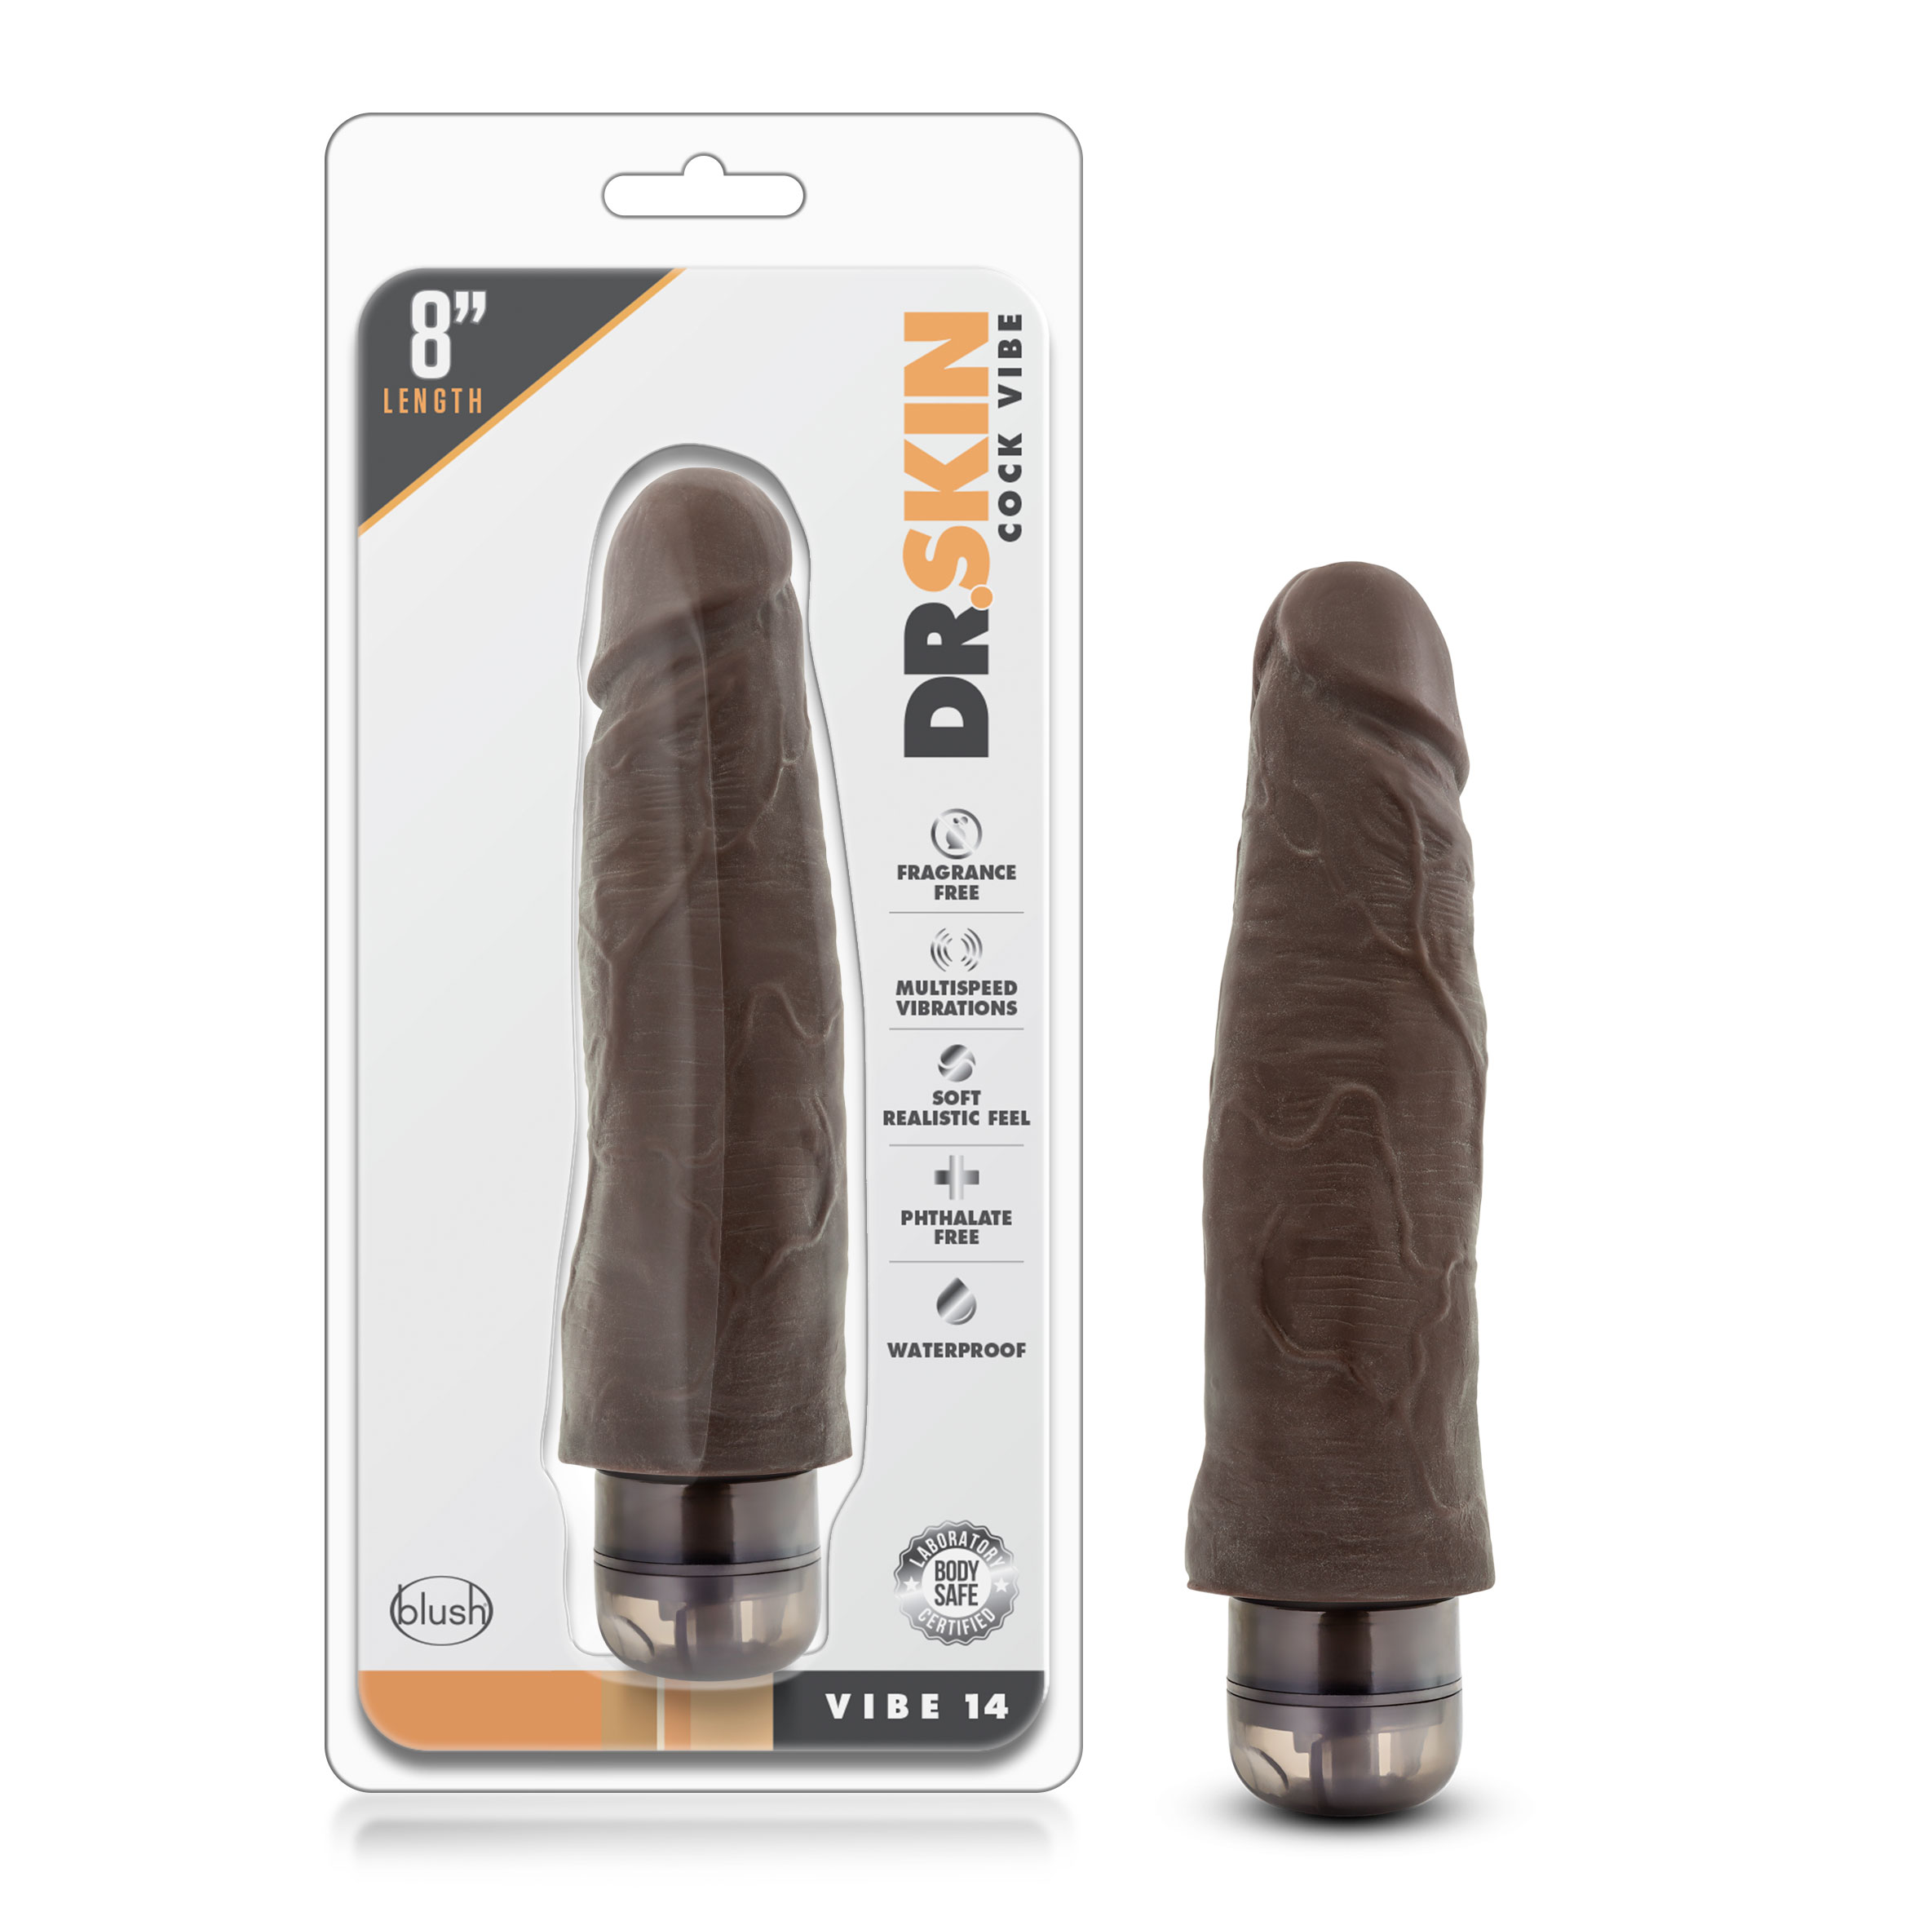 Dr. Skin - Cock Vibe 14 - 8 Inch Vibrating Cock - Chocolate